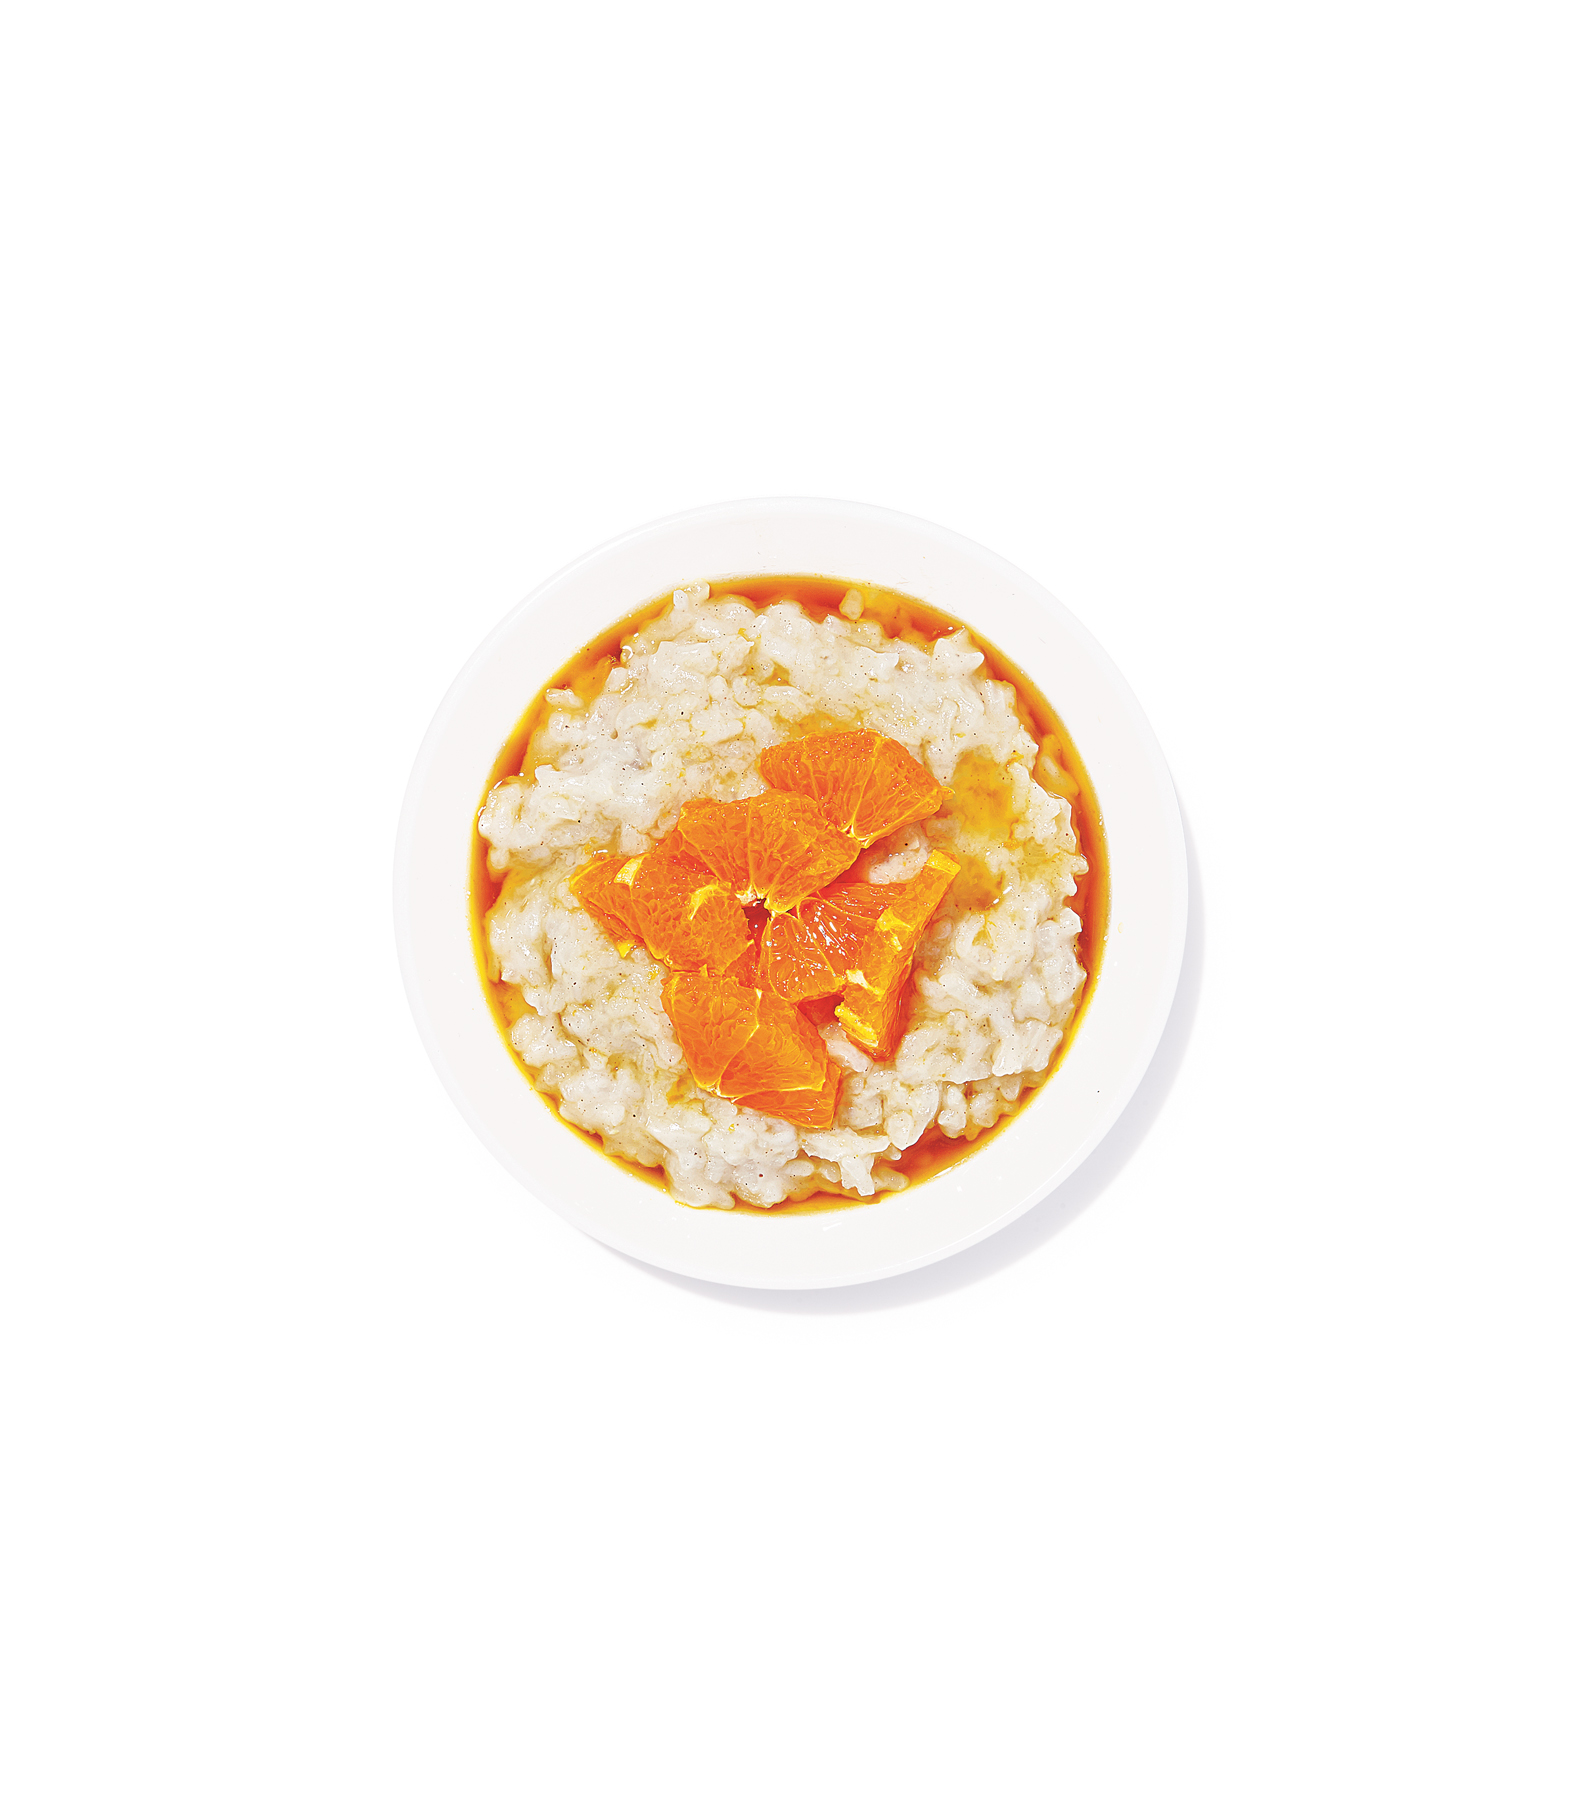 Coconut Rice Pudding With Macerated Clementines